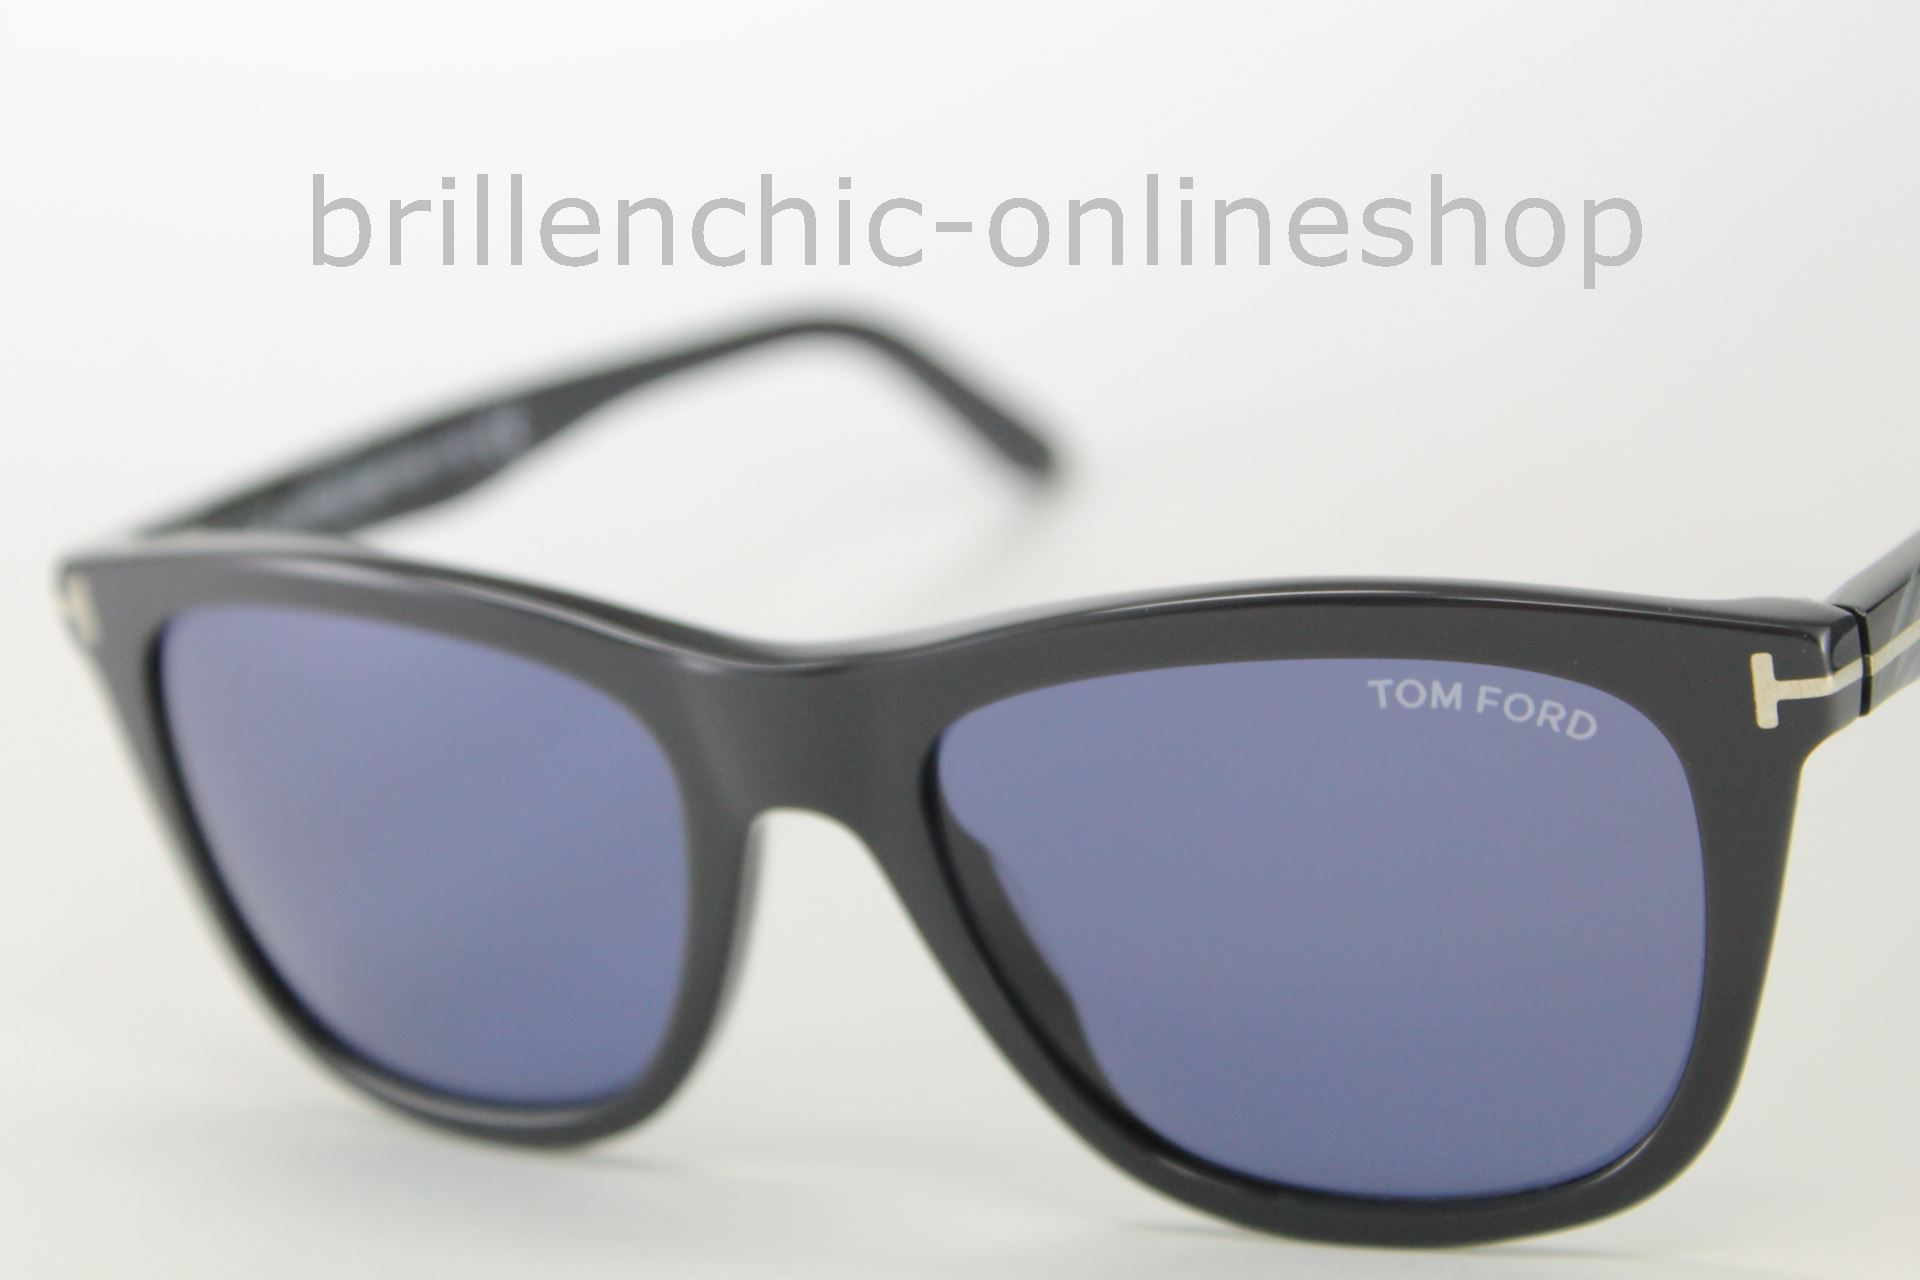 902975fd99b13 Brillenchic-onlineshop in Berlin - TOM FORD TF 500 20V ANDREW